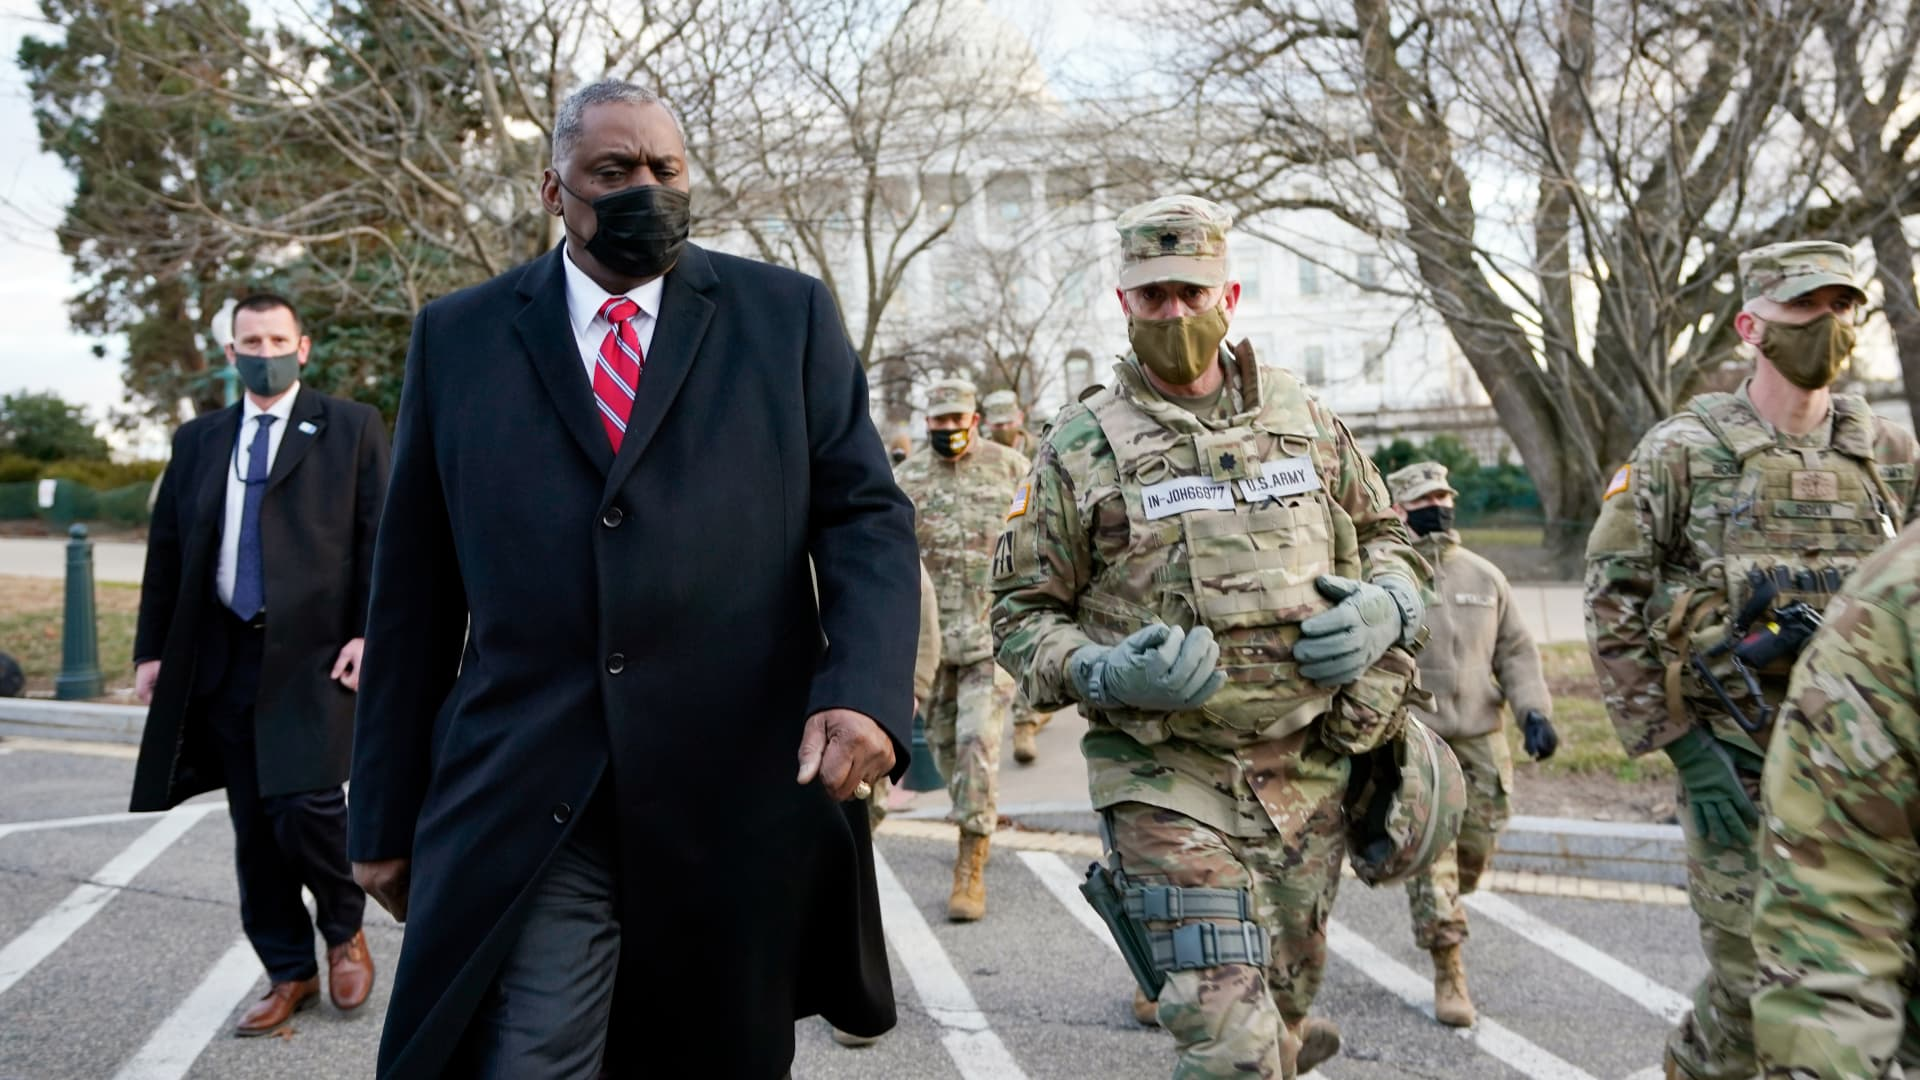 Secretary of Defense Lloyd Austin visits National Guard troops deployed at the U.S. Capitol and its perimeter on January 29, 2021 on Capitol Hill in Washington, DC.